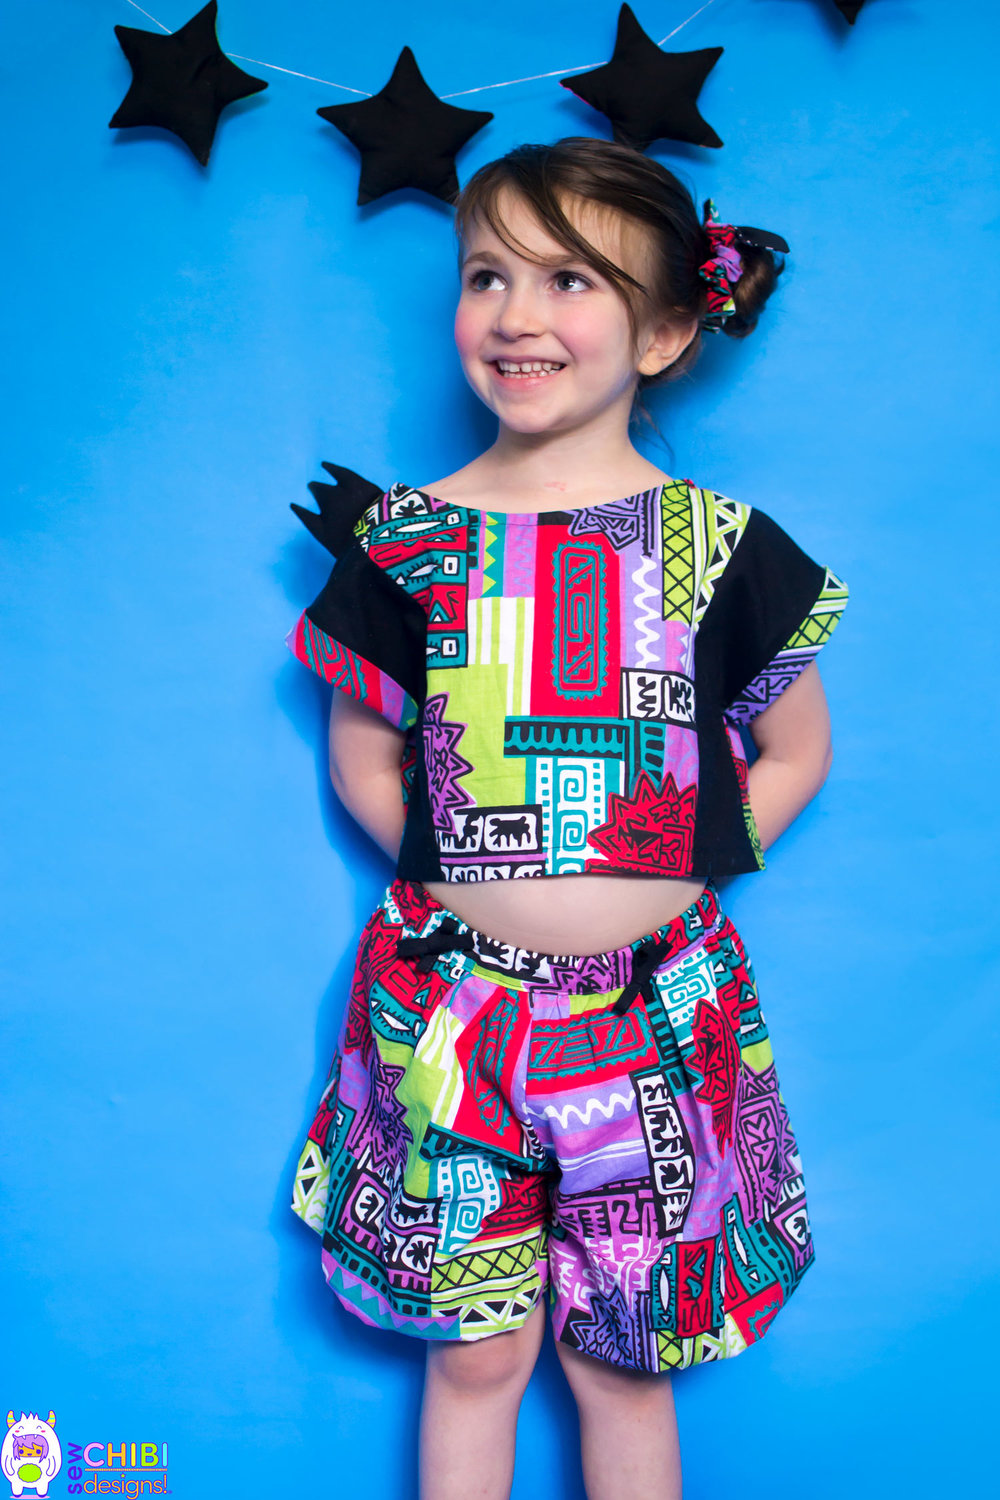 Zou Playset  - the SUPER BUBBLE CULOTTES[sizes 2T-10Y]•super poofy and fully lined.•ties connect to the regular-sized trunk pocket•optional snap-on tail